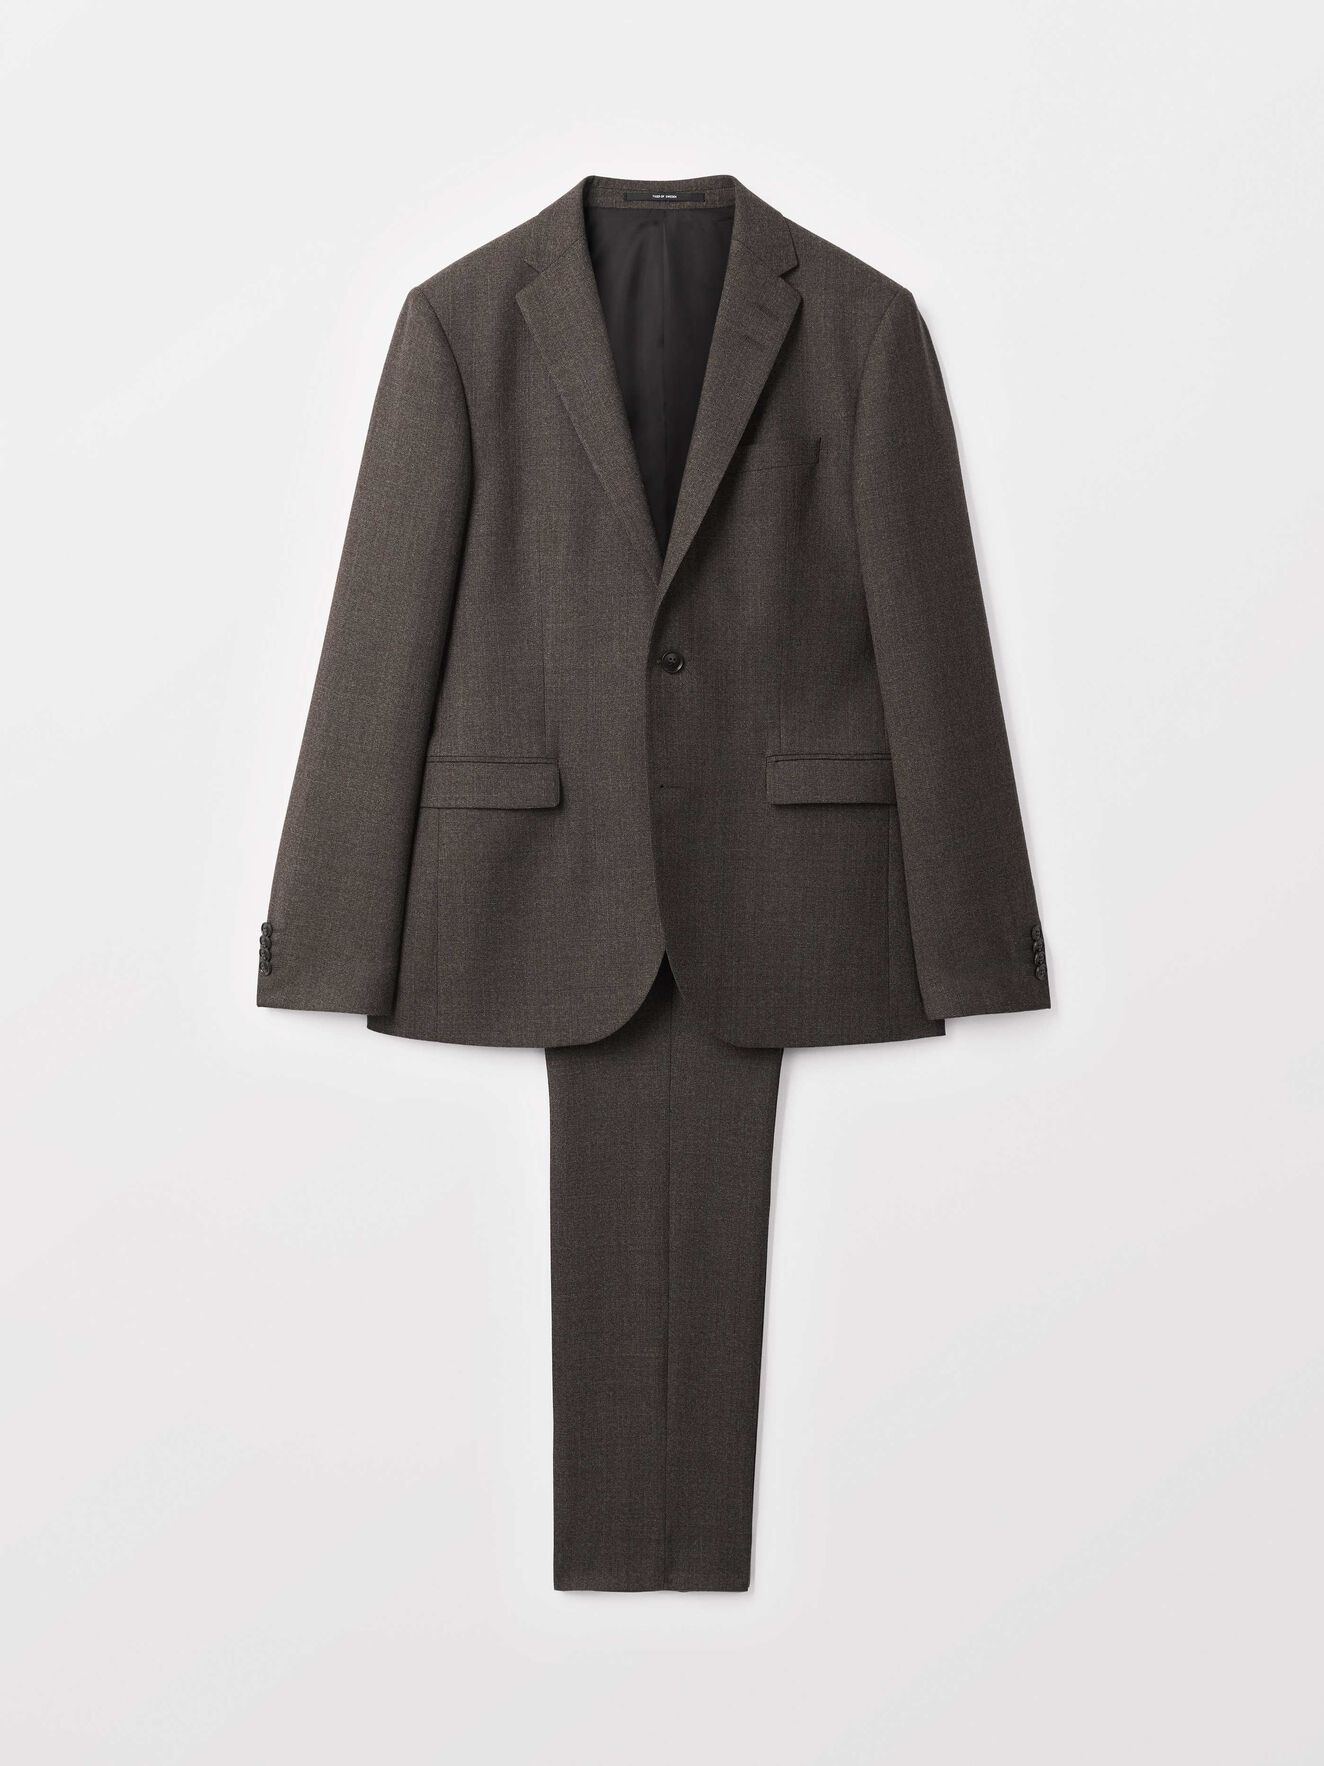 Henrie Suit in Brown from Tiger of Sweden